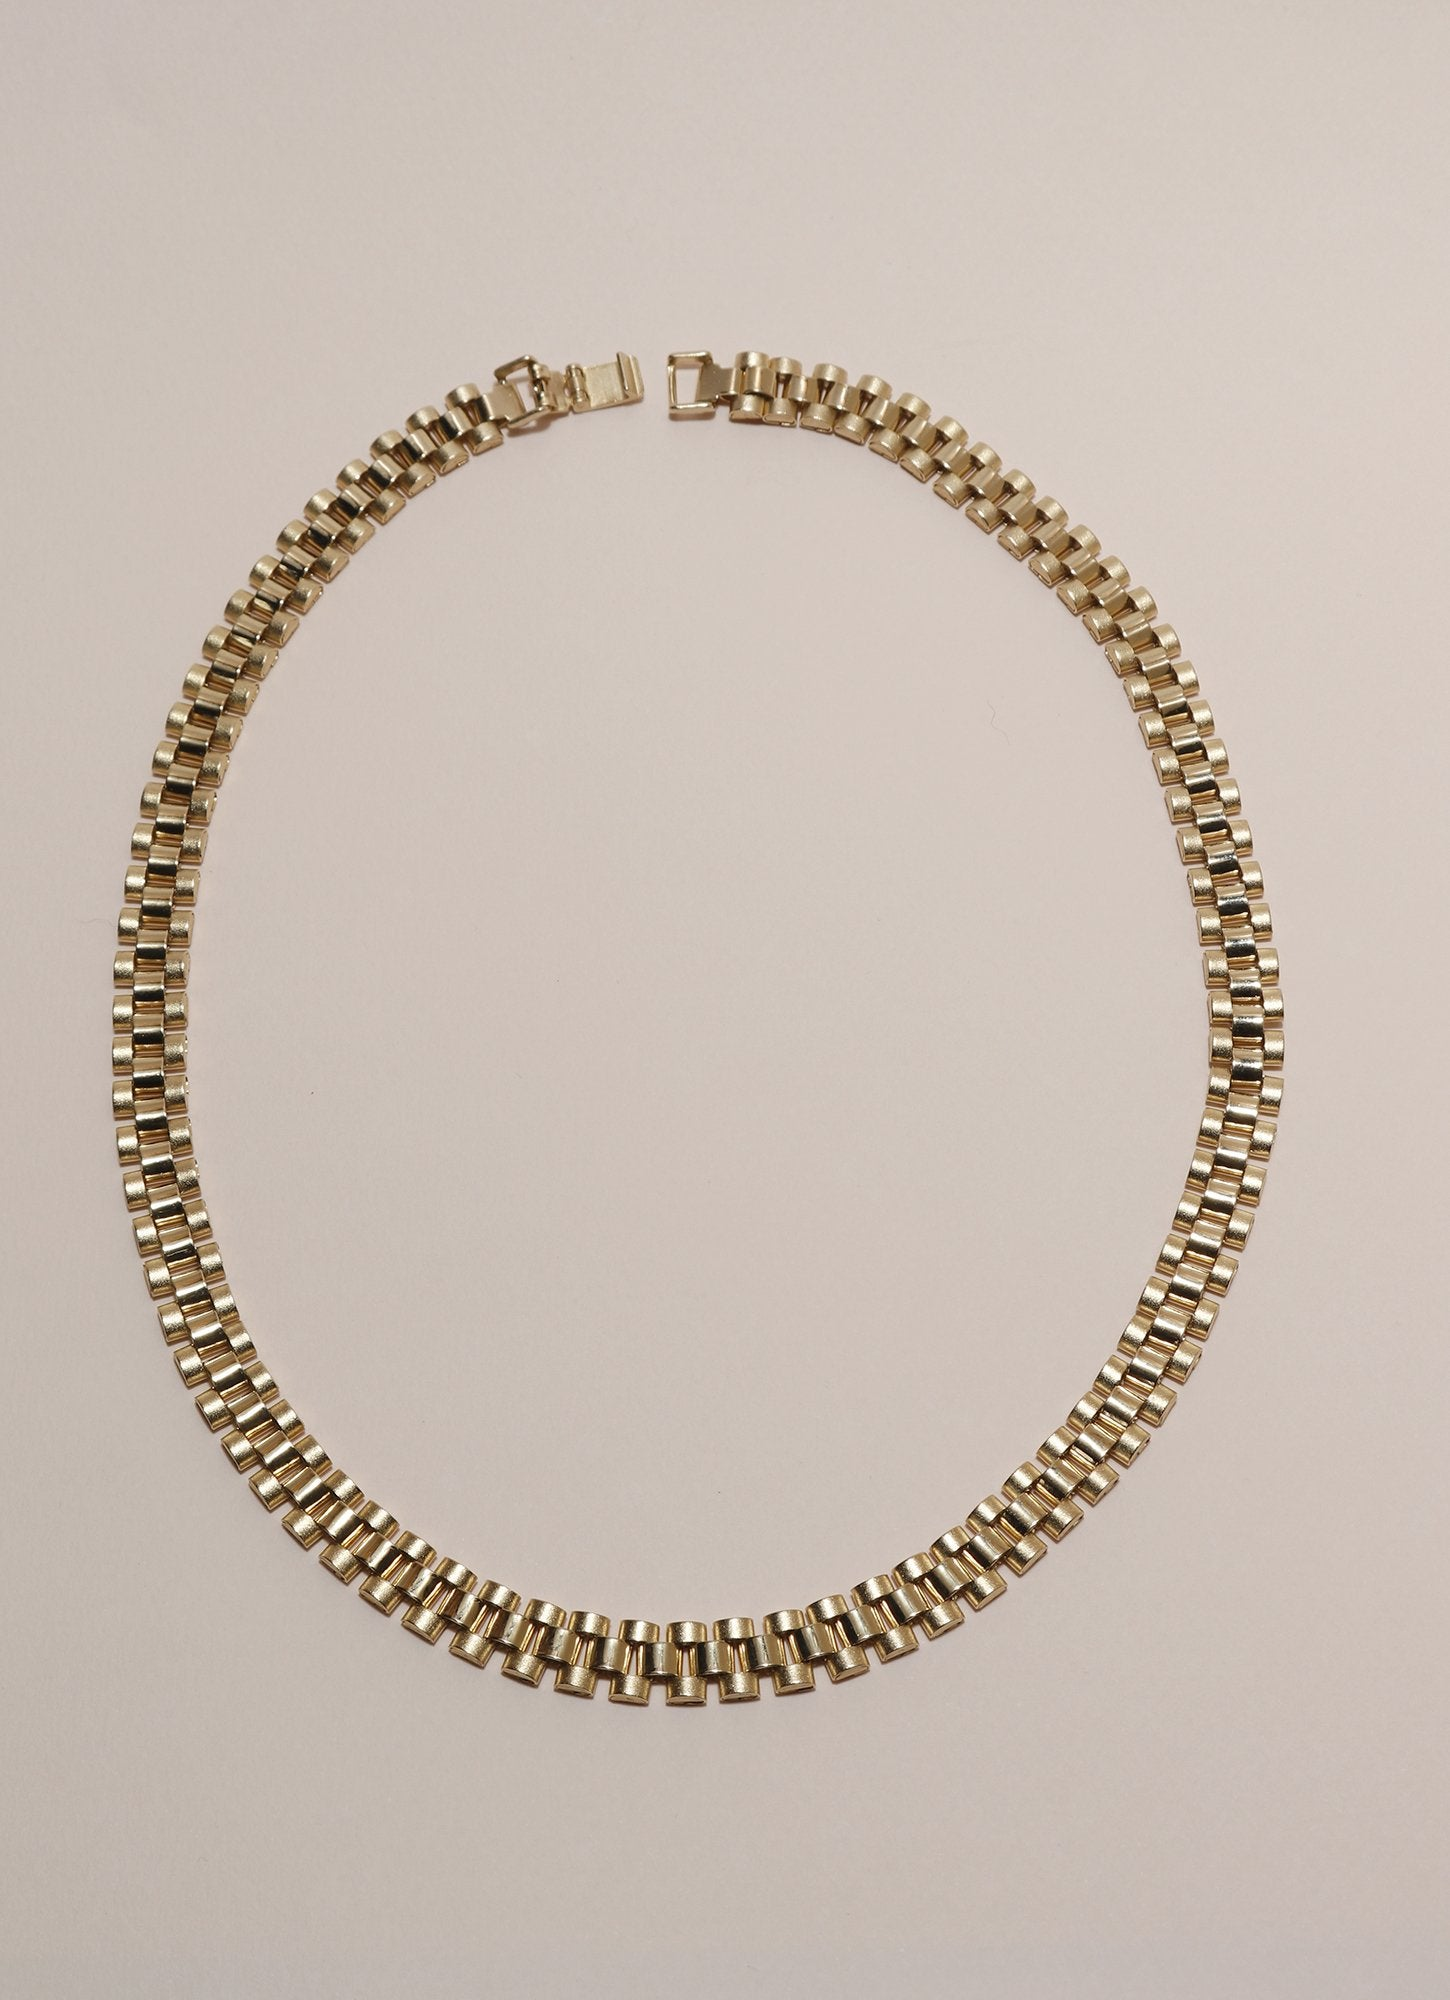 Intricate chain necklace